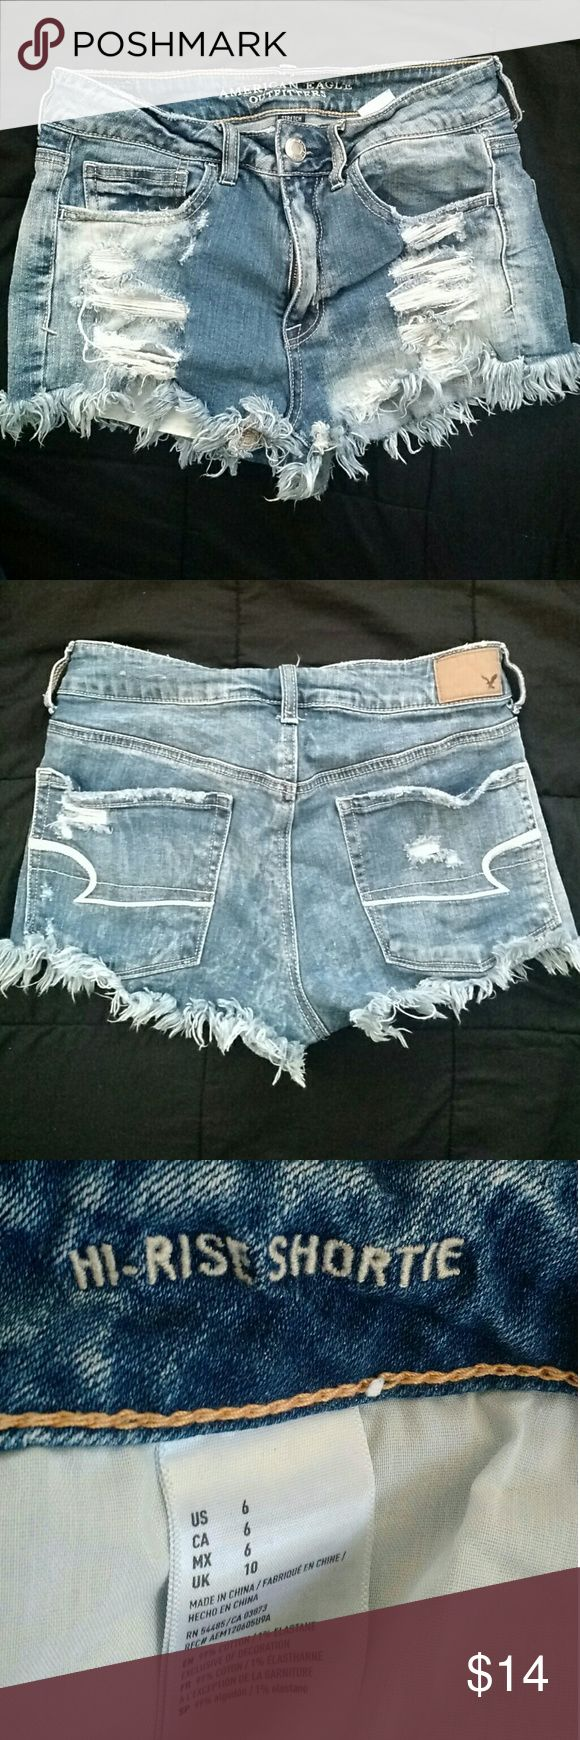 American Eagle Hi-Rise Shortie Denim Shorts Sz 6 Women's American Eagle Shorts Denim/ Jean Shorts Distressed acid wash. Stretch Hi-Rise Shortie Size 6 99% Cotton 1% Elastane Excellent condition! From a smoke-free and pet-free home. American Eagle Outfitters Shorts Jean Shorts